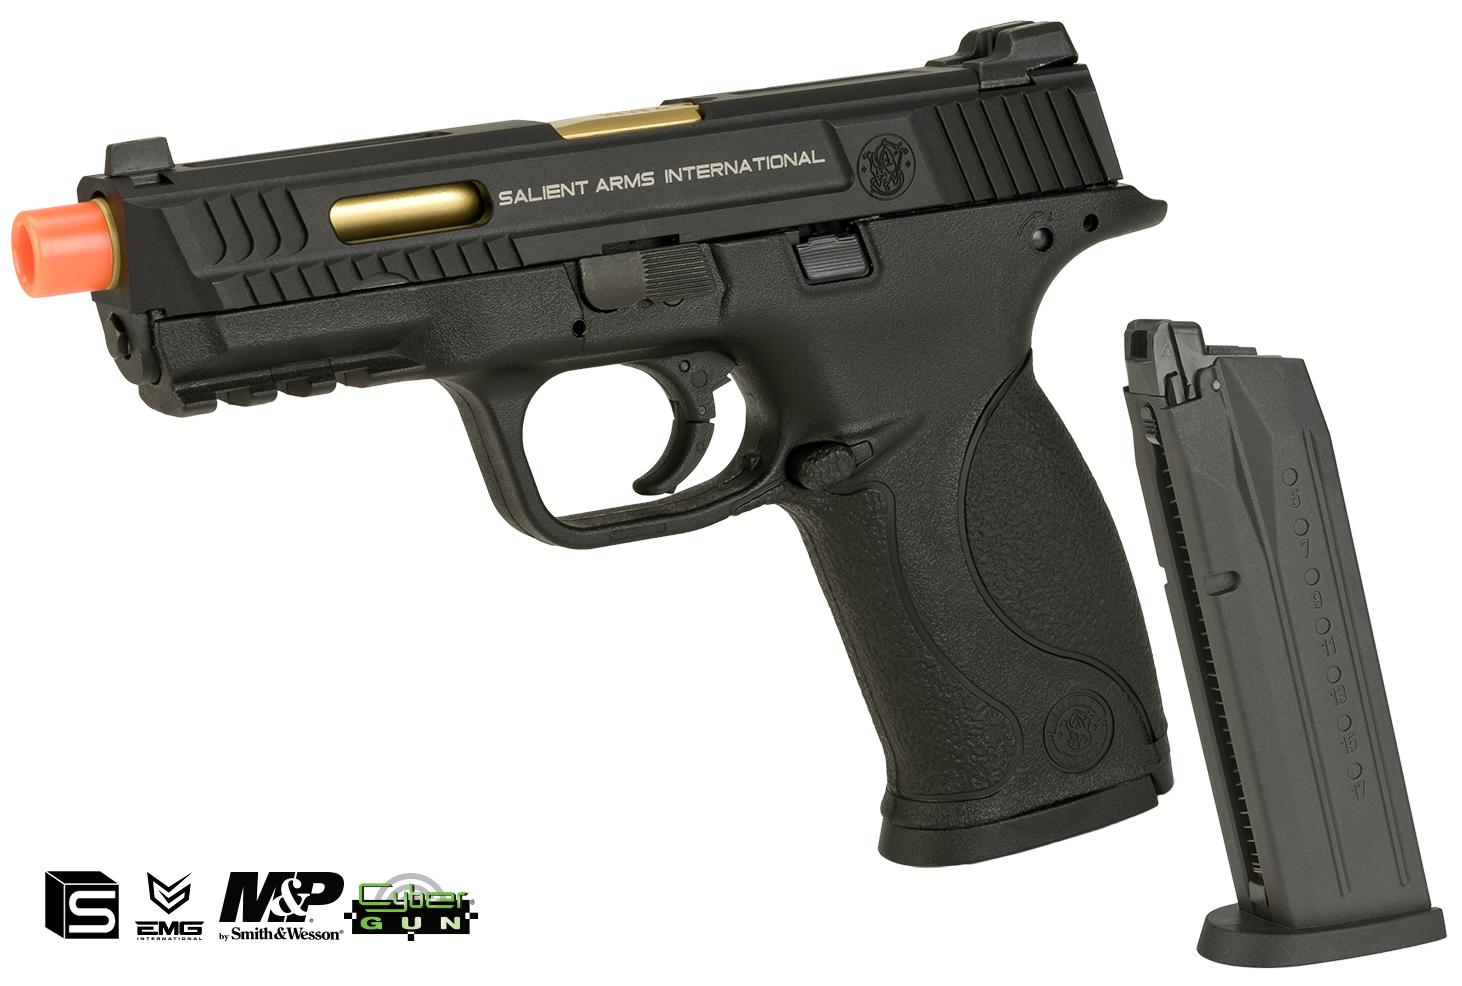 EMG / SAI / Smith & Wesson Licensed M&P 9 Full Size Airsoft GBB Pistol - Black (Package: Add Extra Magazine)